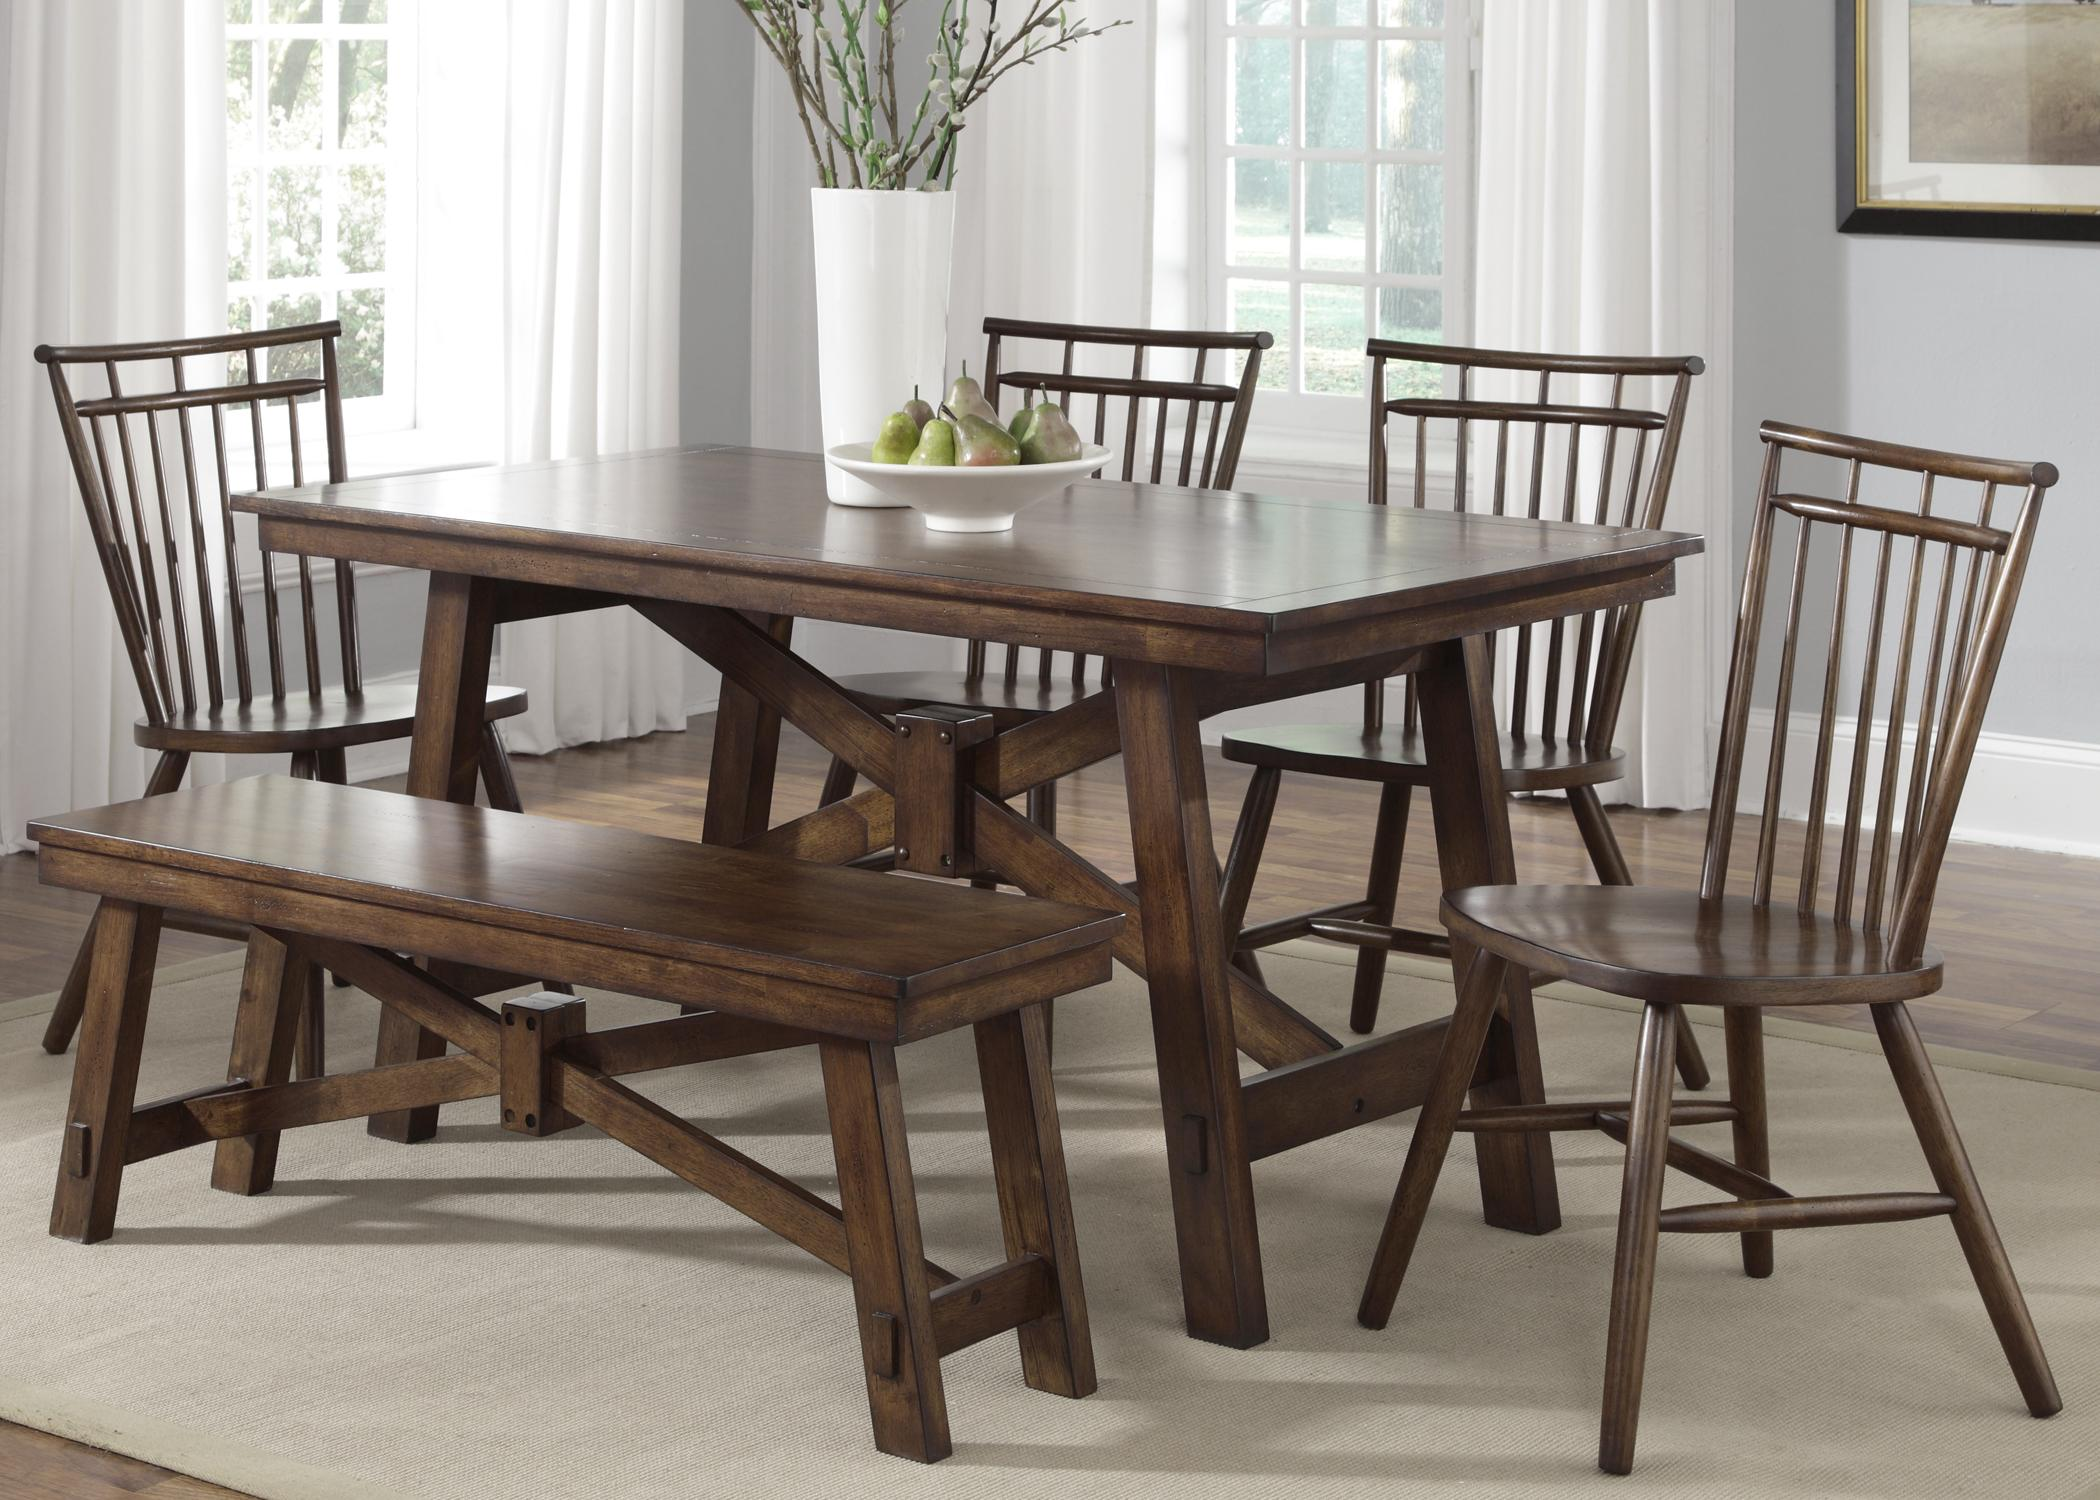 Liberty Furniture Creations II 6 Piece Table Set - Item Number: 38-T3260+1xB9000+4xC4000S